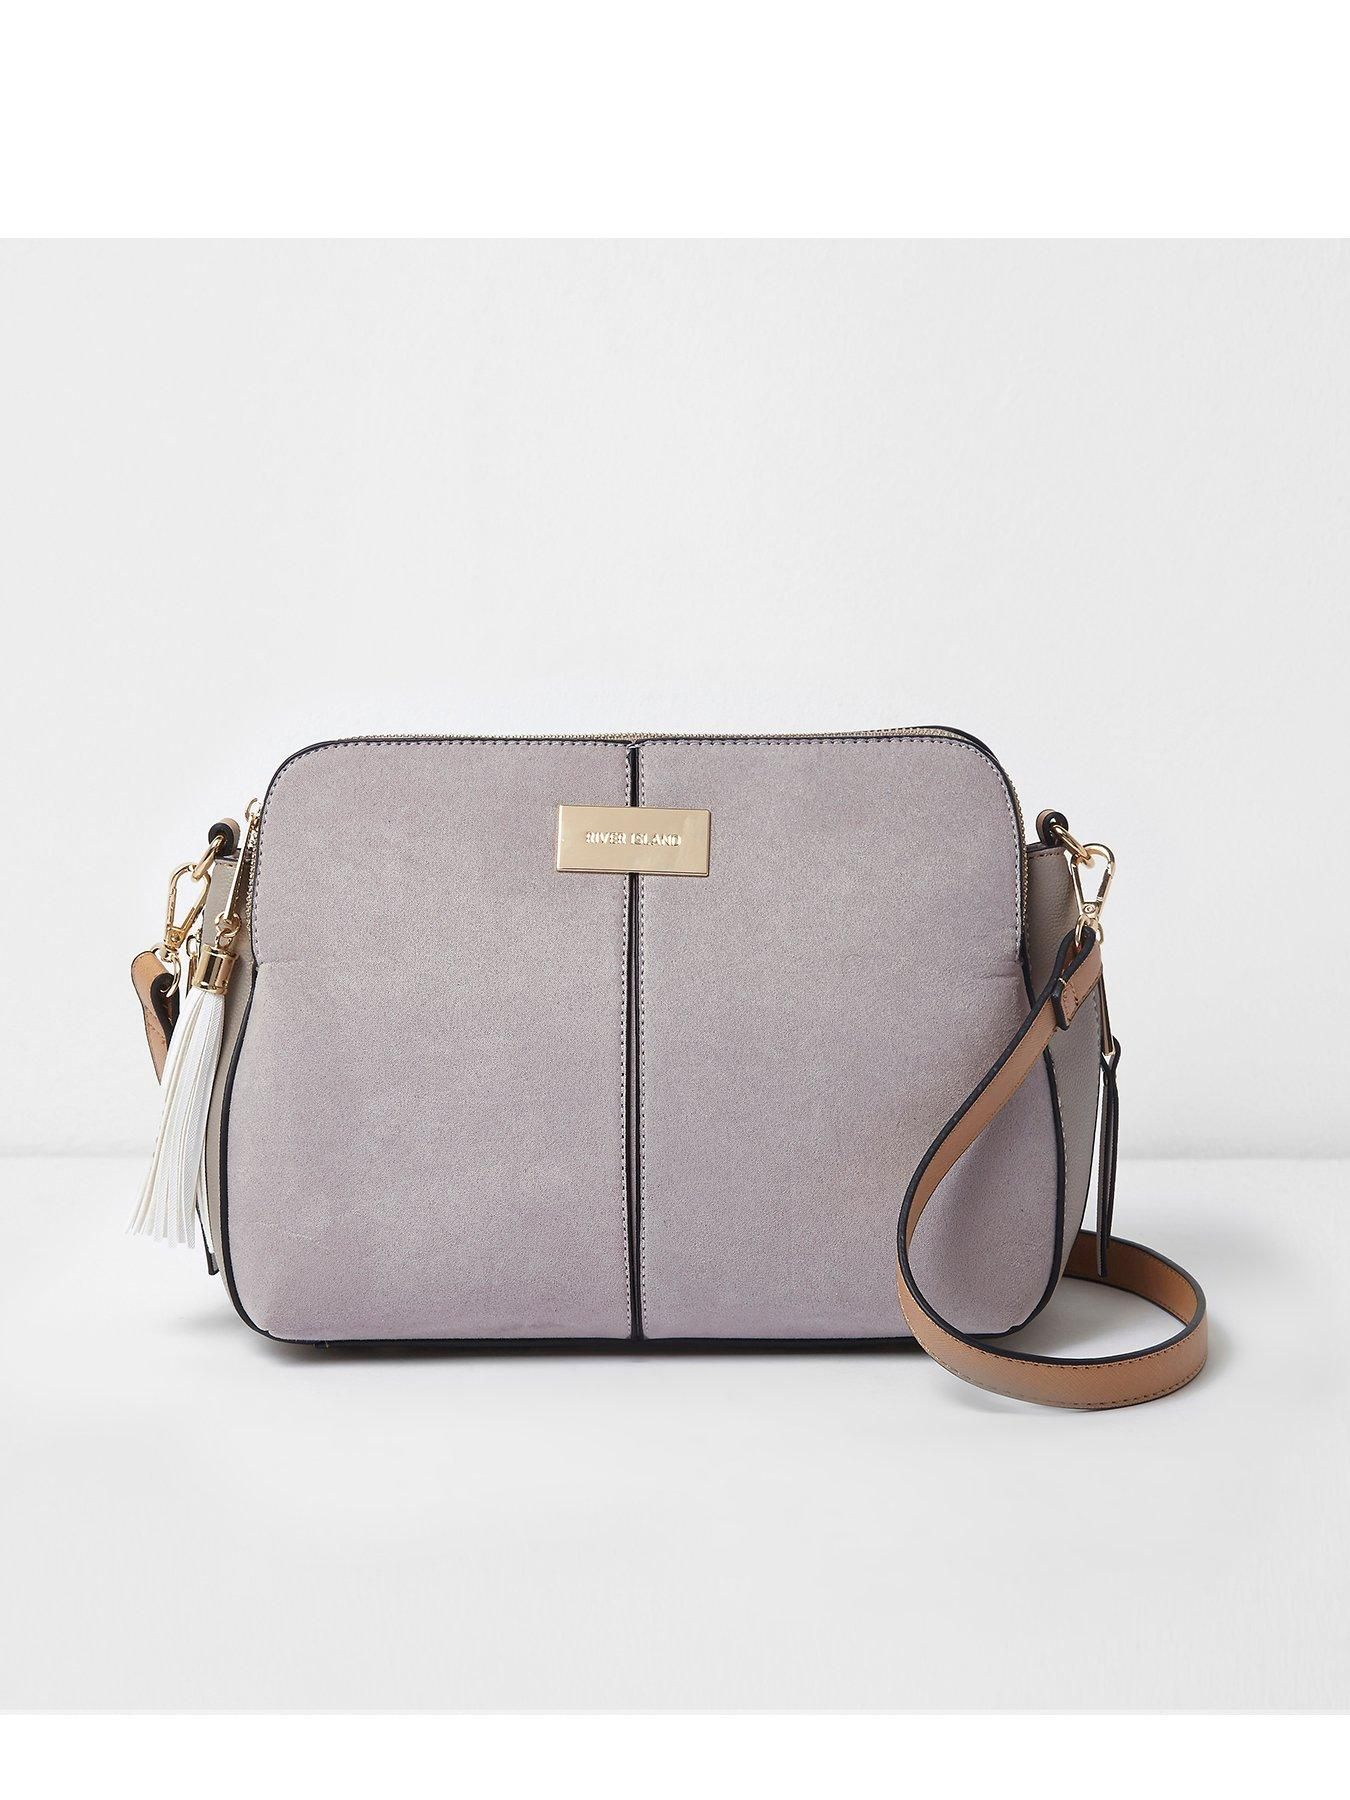 988b00256cd River Island River Island Medium Triple Compartment Cross Body Bag- Grey